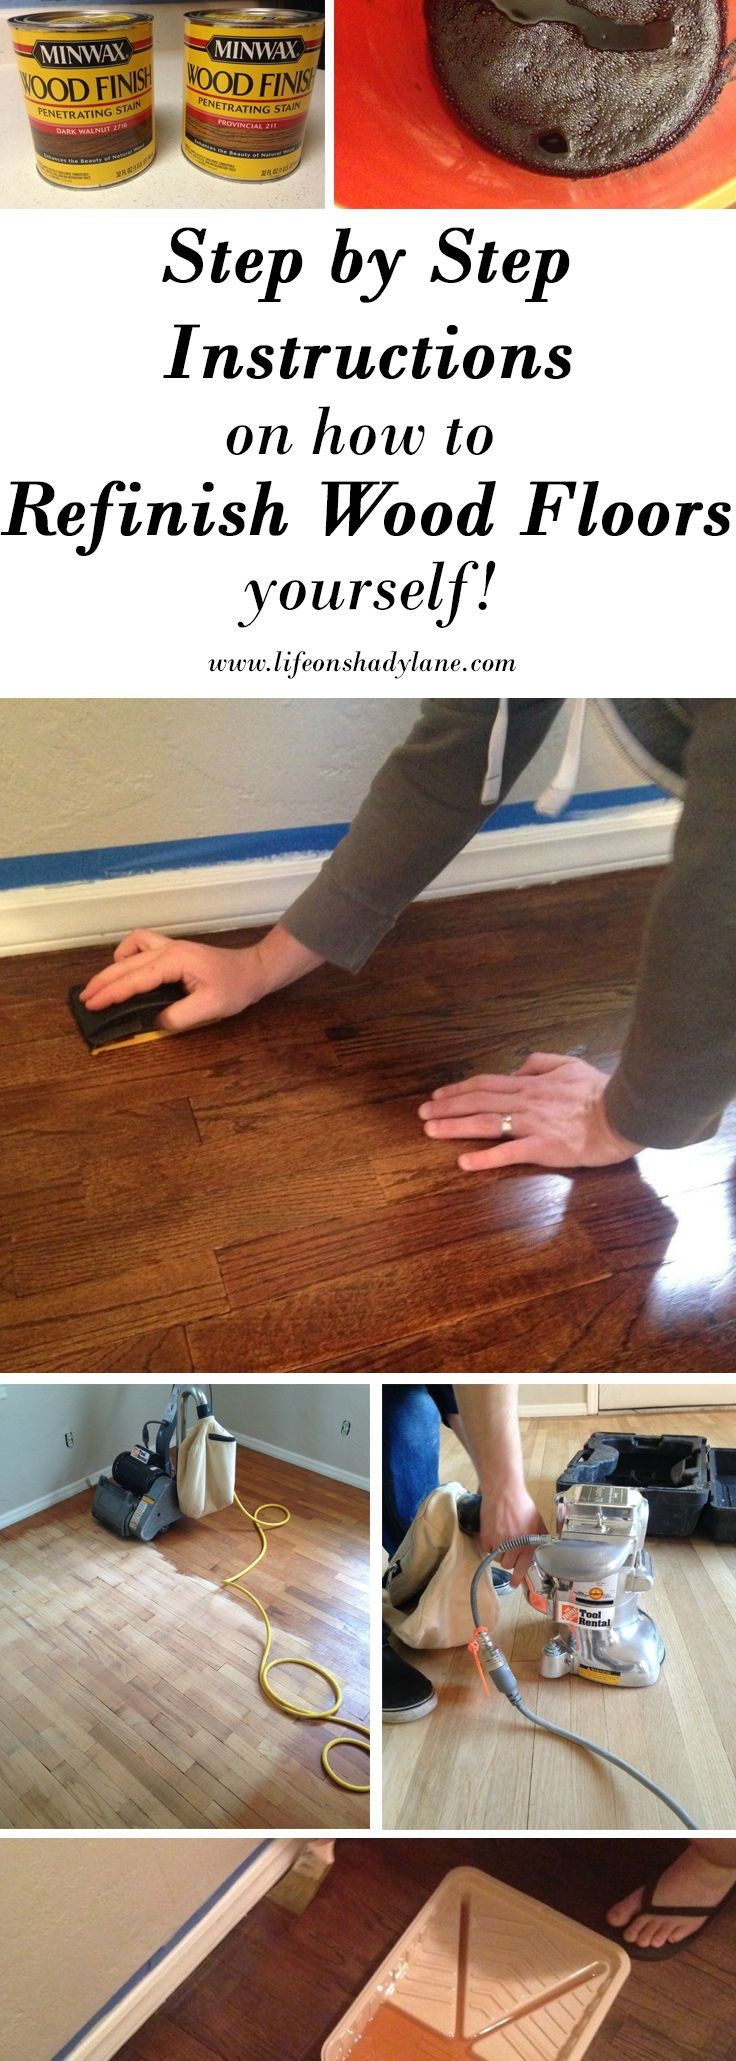 hardwood flooring knee pads of 13 fresh hardwood floor repair kit pics dizpos com regarding hardwood floor repair kit fresh how to refinish hardwood floors part 1 pics of 13 fresh